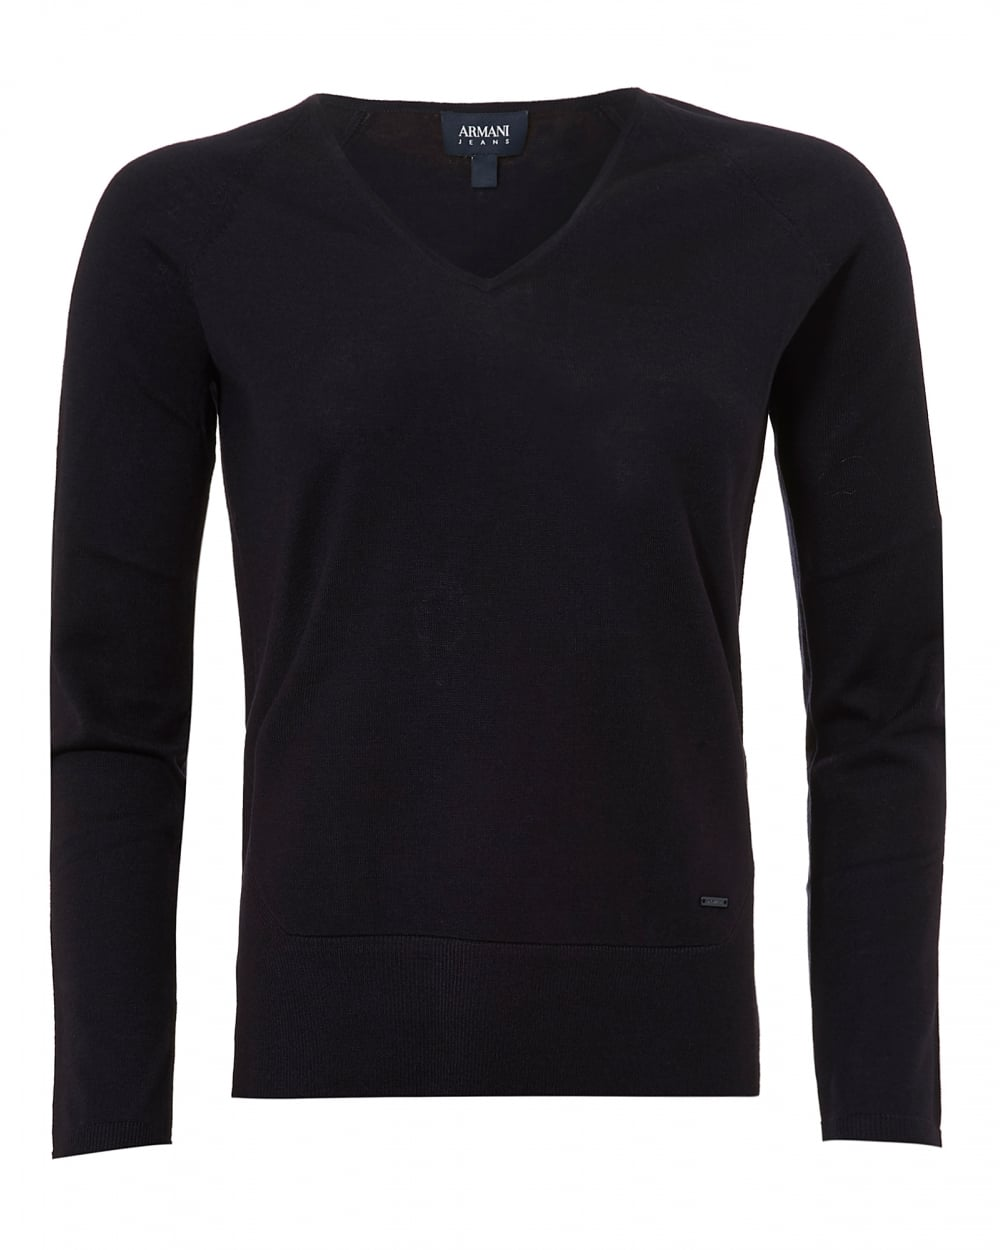 Armani Jeans Womens Basic V-Neck Jumper, Navy Blue Sweater